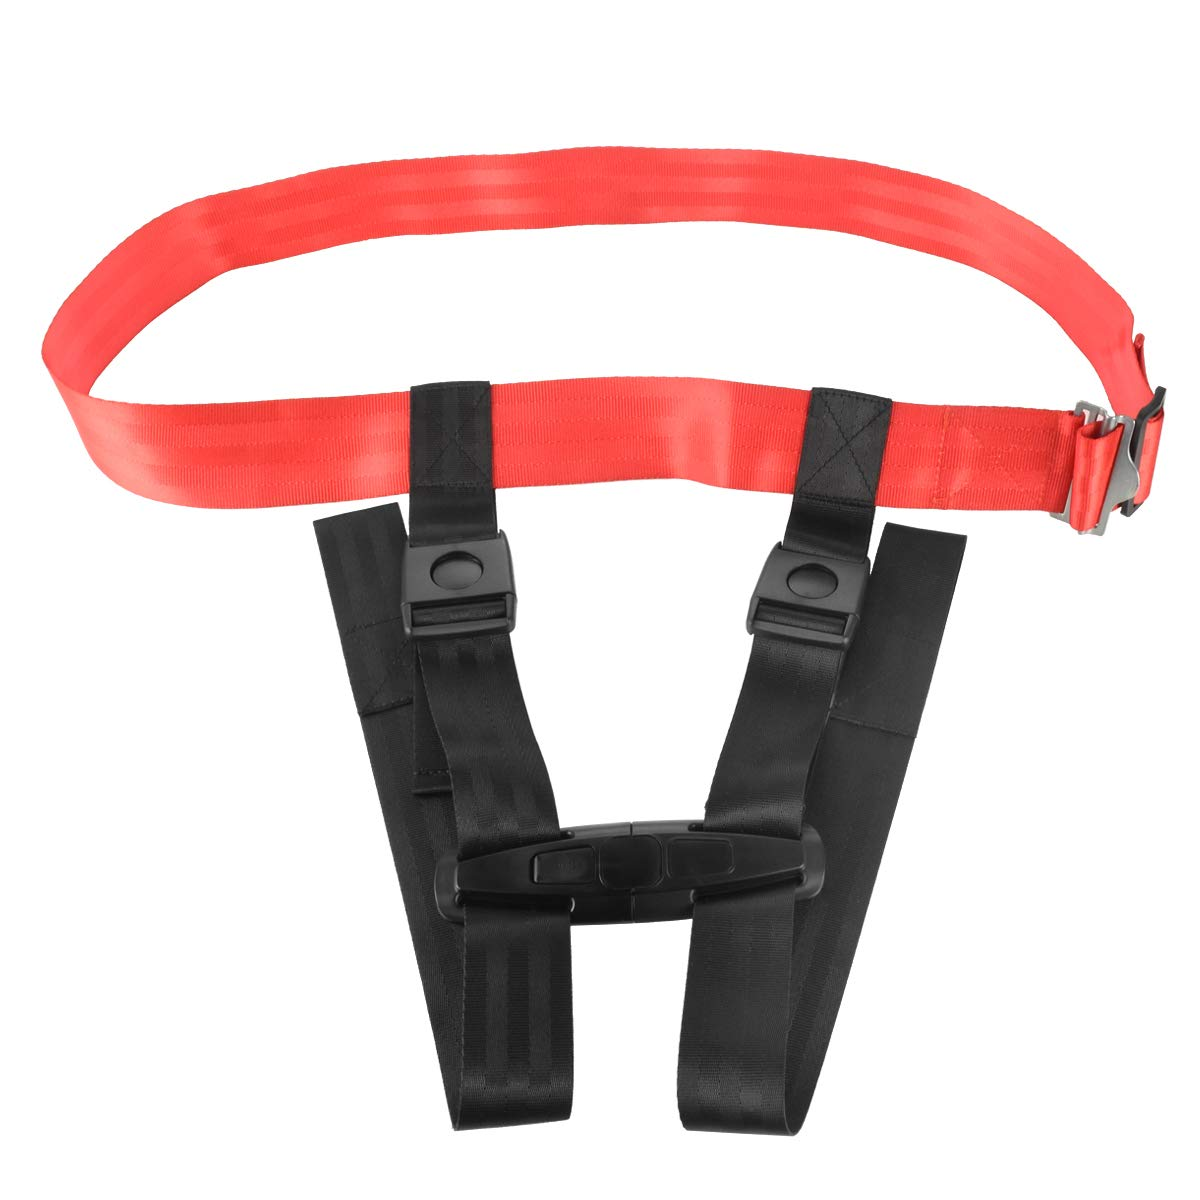 Ansblue Child Safety Harness Airplane Travel Clip Strap with Carry Pouch Bag.The Travel Harness Safety System Will Protect Your Child from Dangerous - 1pcs by Ansblue (Image #3)